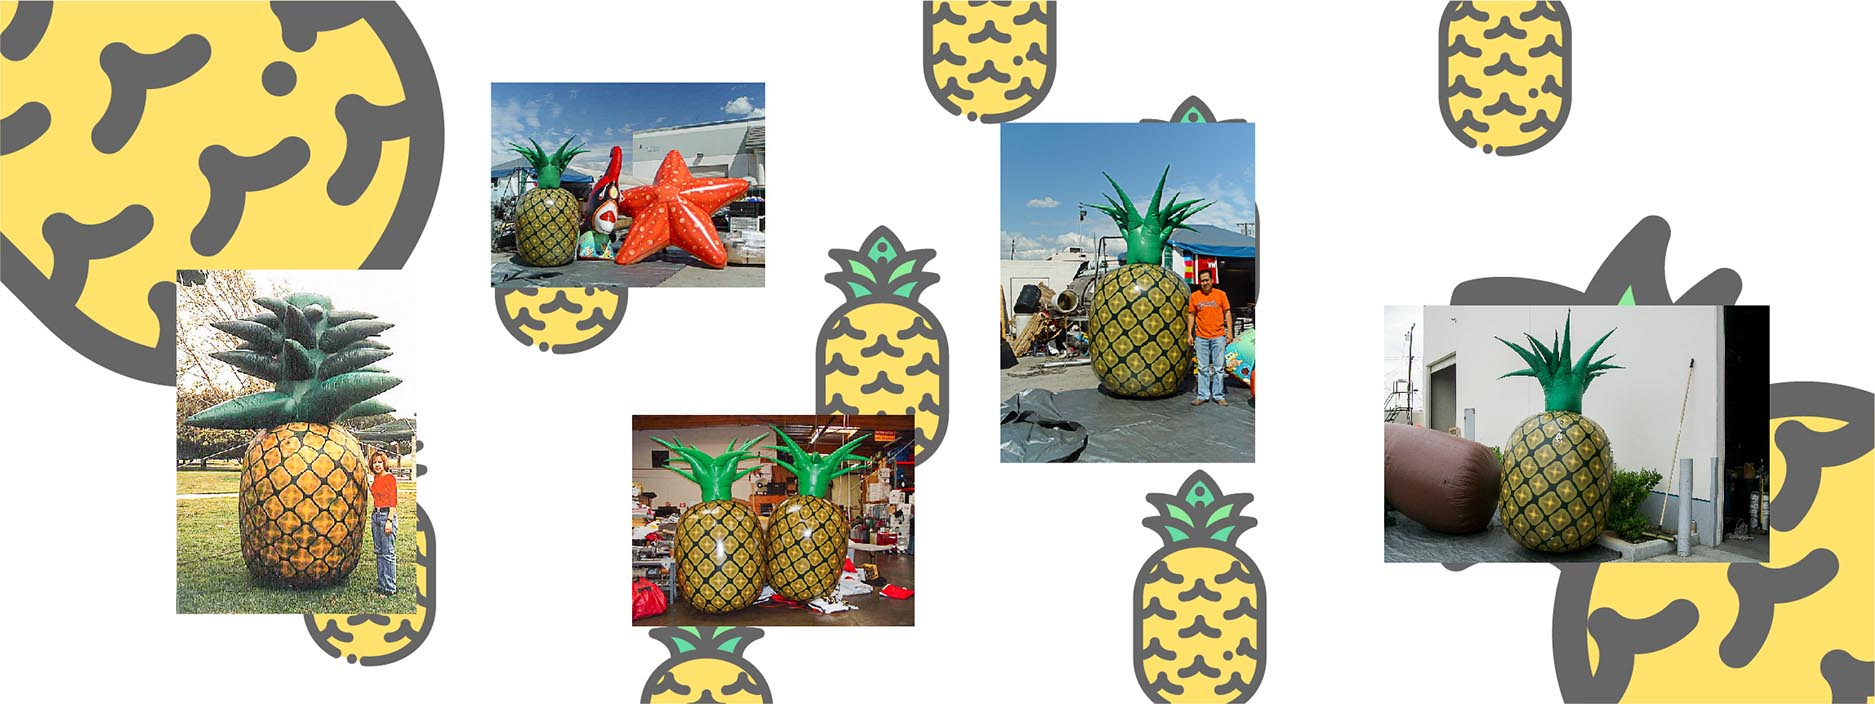 Inflatable-pineapple-collage.jpg